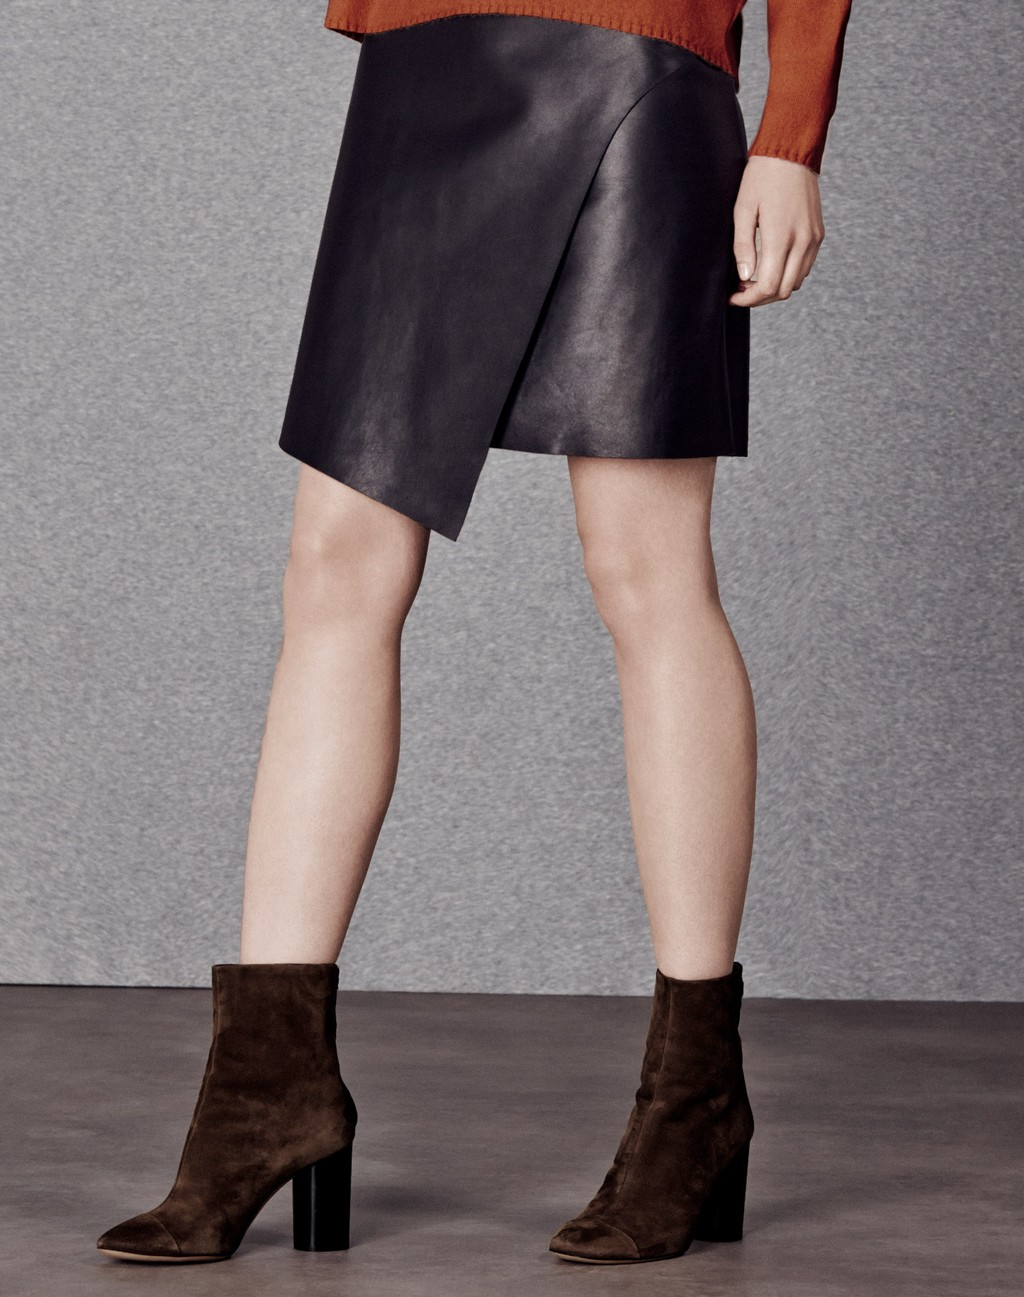 Asymmetric Leather Skirt Black - pattern: plain; style: wrap/faux wrap; fit: tailored/fitted; waist: mid/regular rise; predominant colour: black; occasions: casual, evening, creative work; length: just above the knee; fibres: leather - 100%; texture group: leather; pattern type: fabric; season: a/w 2015; wardrobe: highlight